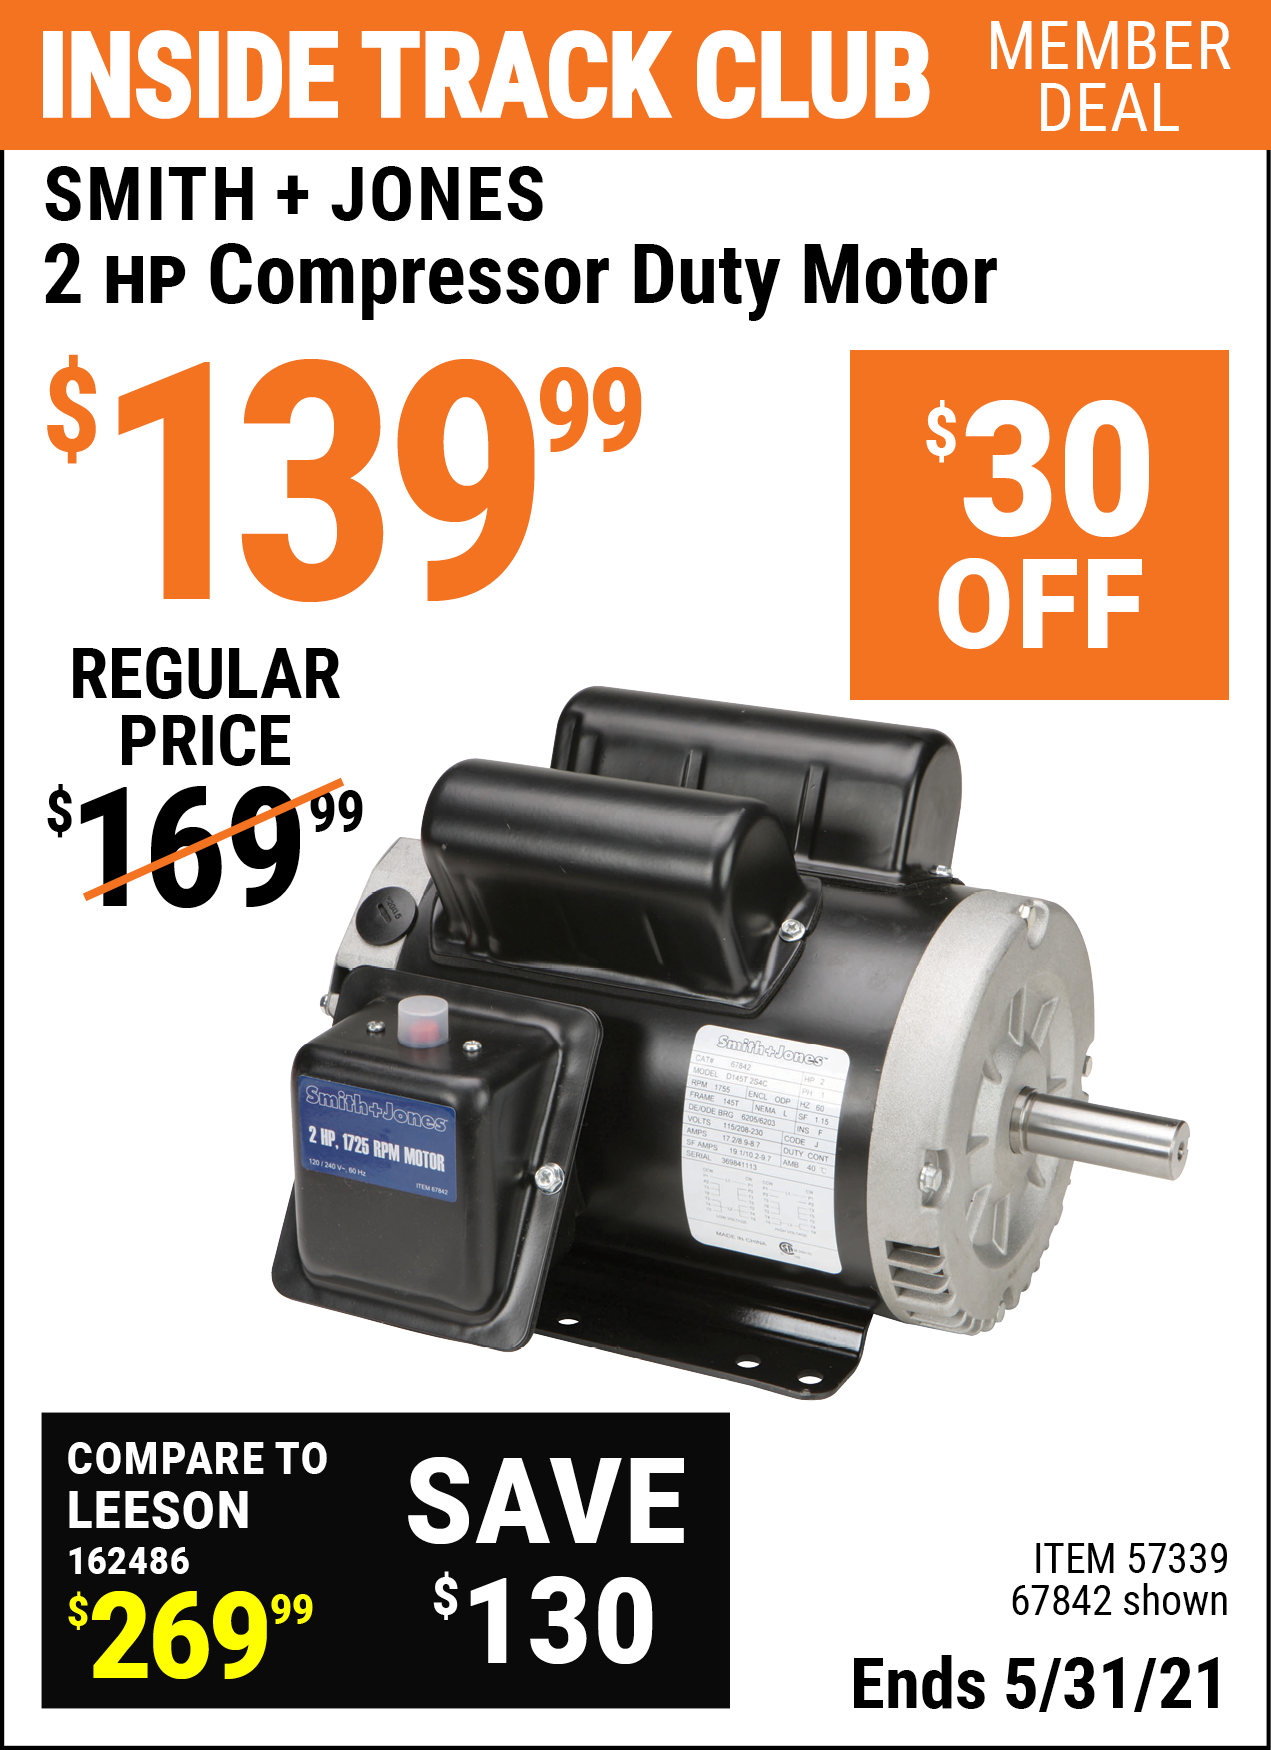 Inside Track Club members can buy the SMITH + JONES 2 HP Compressor Duty Motor (Item 67842/57339) for $139.99, valid through 5/31/2021.